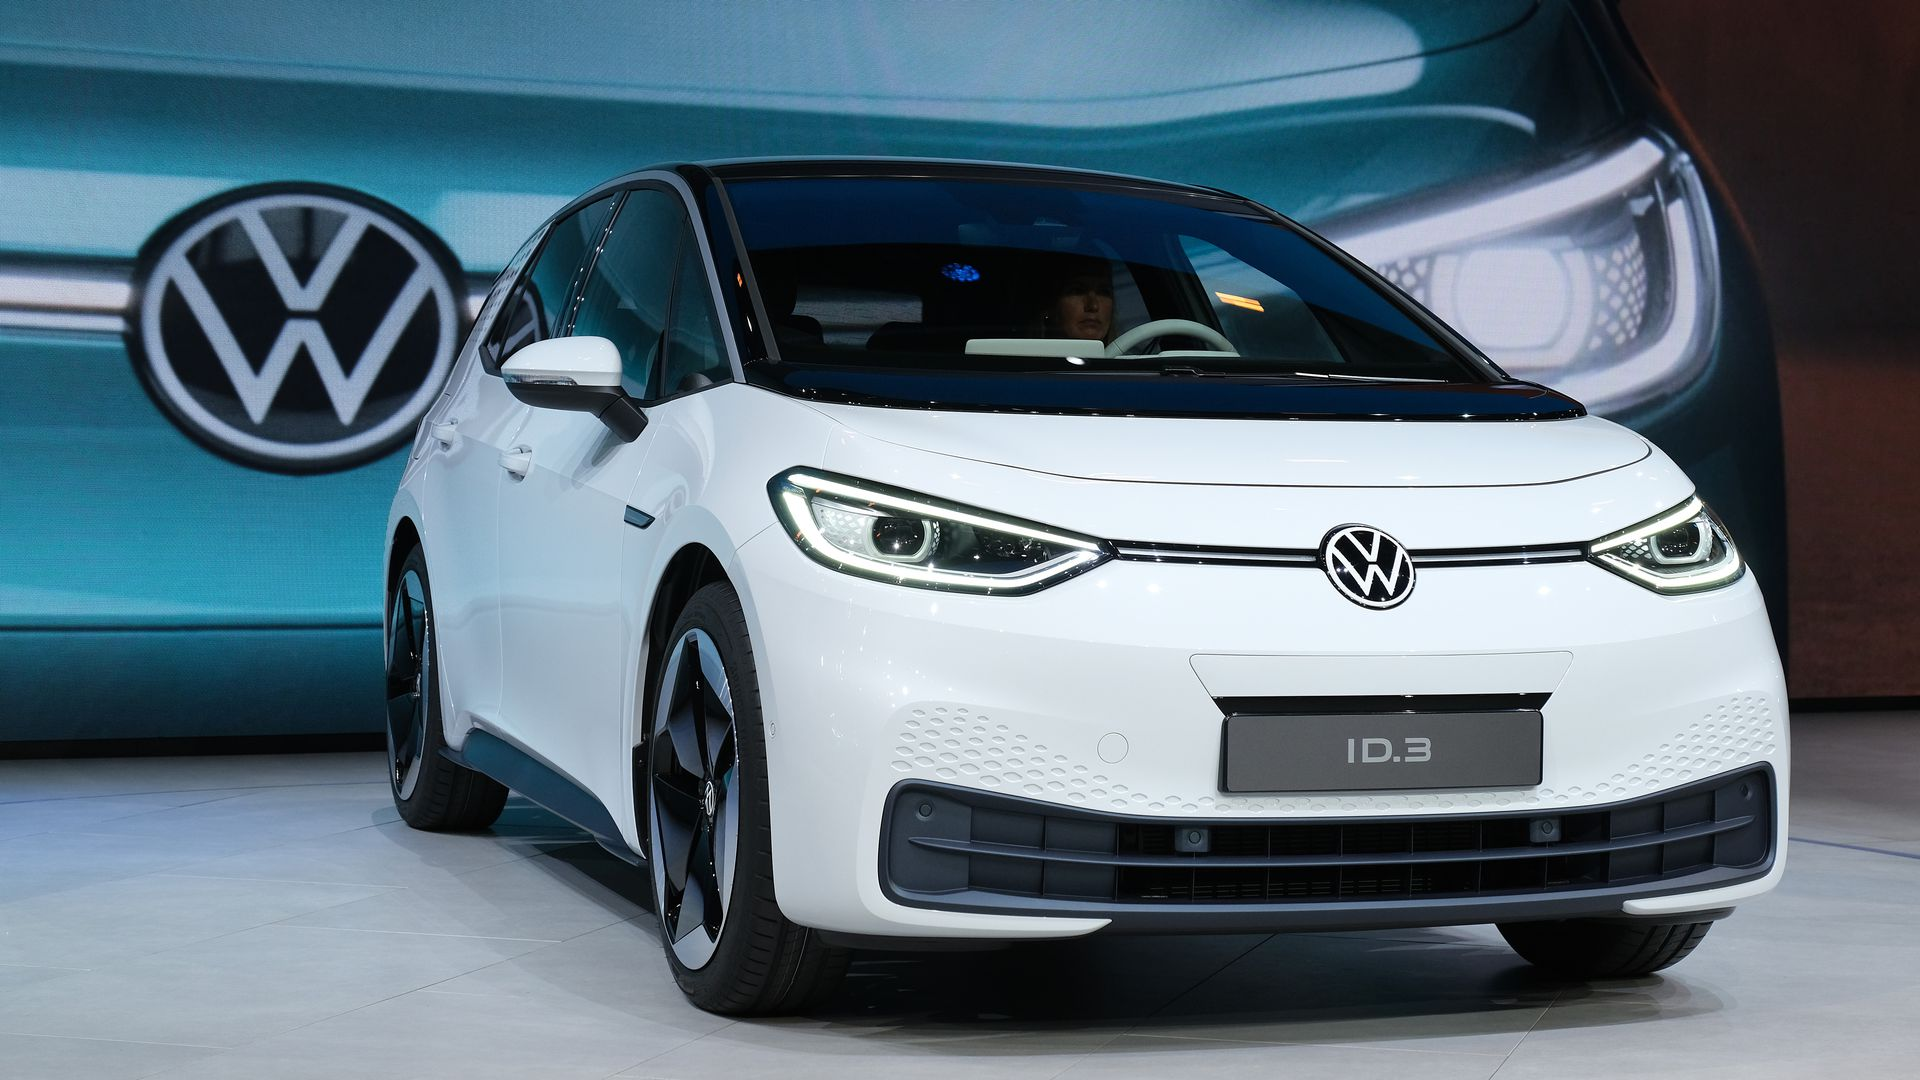 VW's new ID.3 electric car at the Volkswagen media preview at the 2019 IAA Frankfurt Auto Show on September 09, 2019.